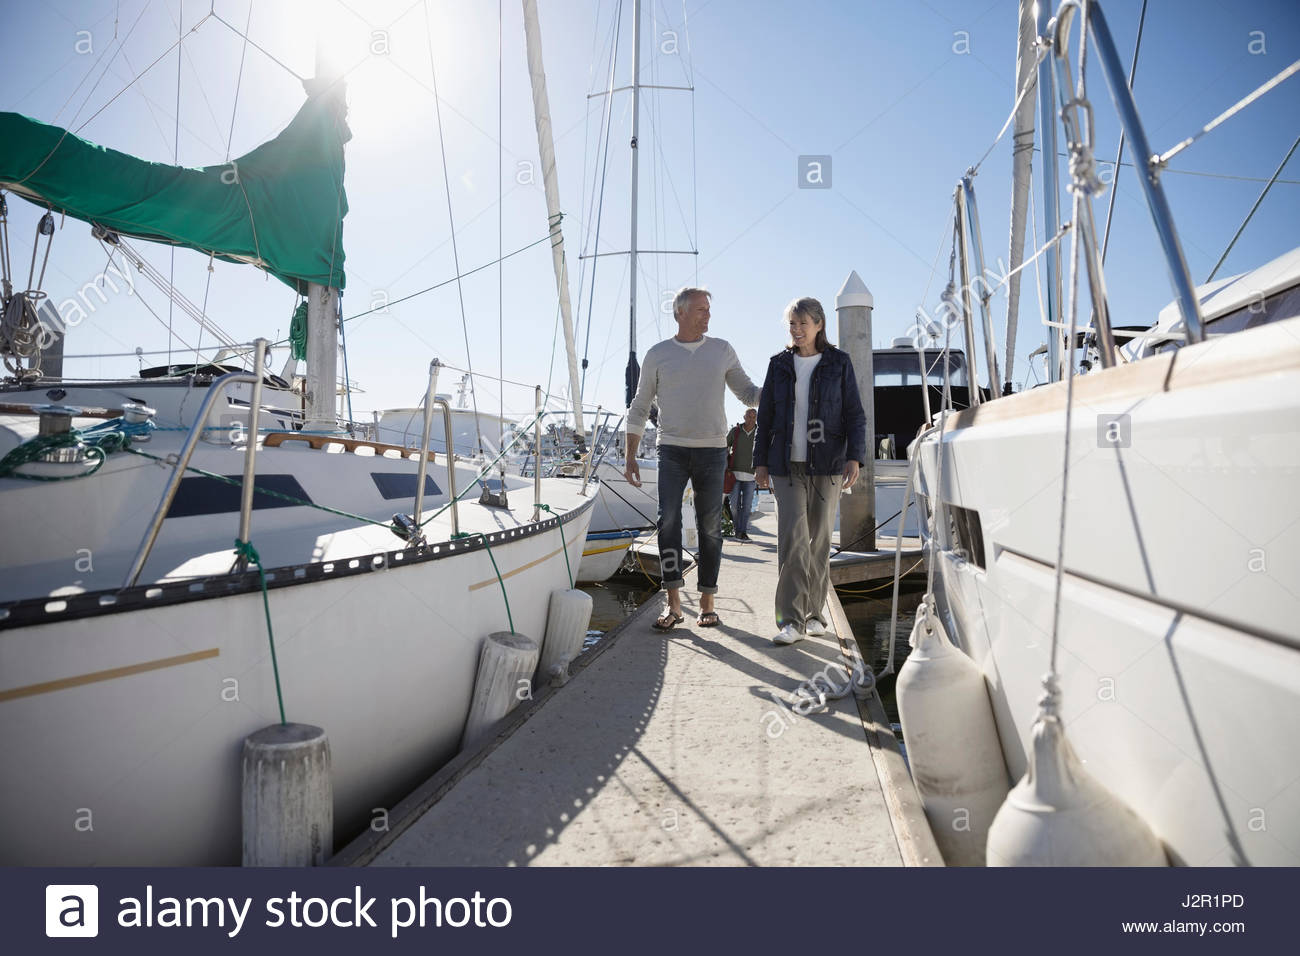 Senior couple walking among sailboats in sunny harbor - Stock Image